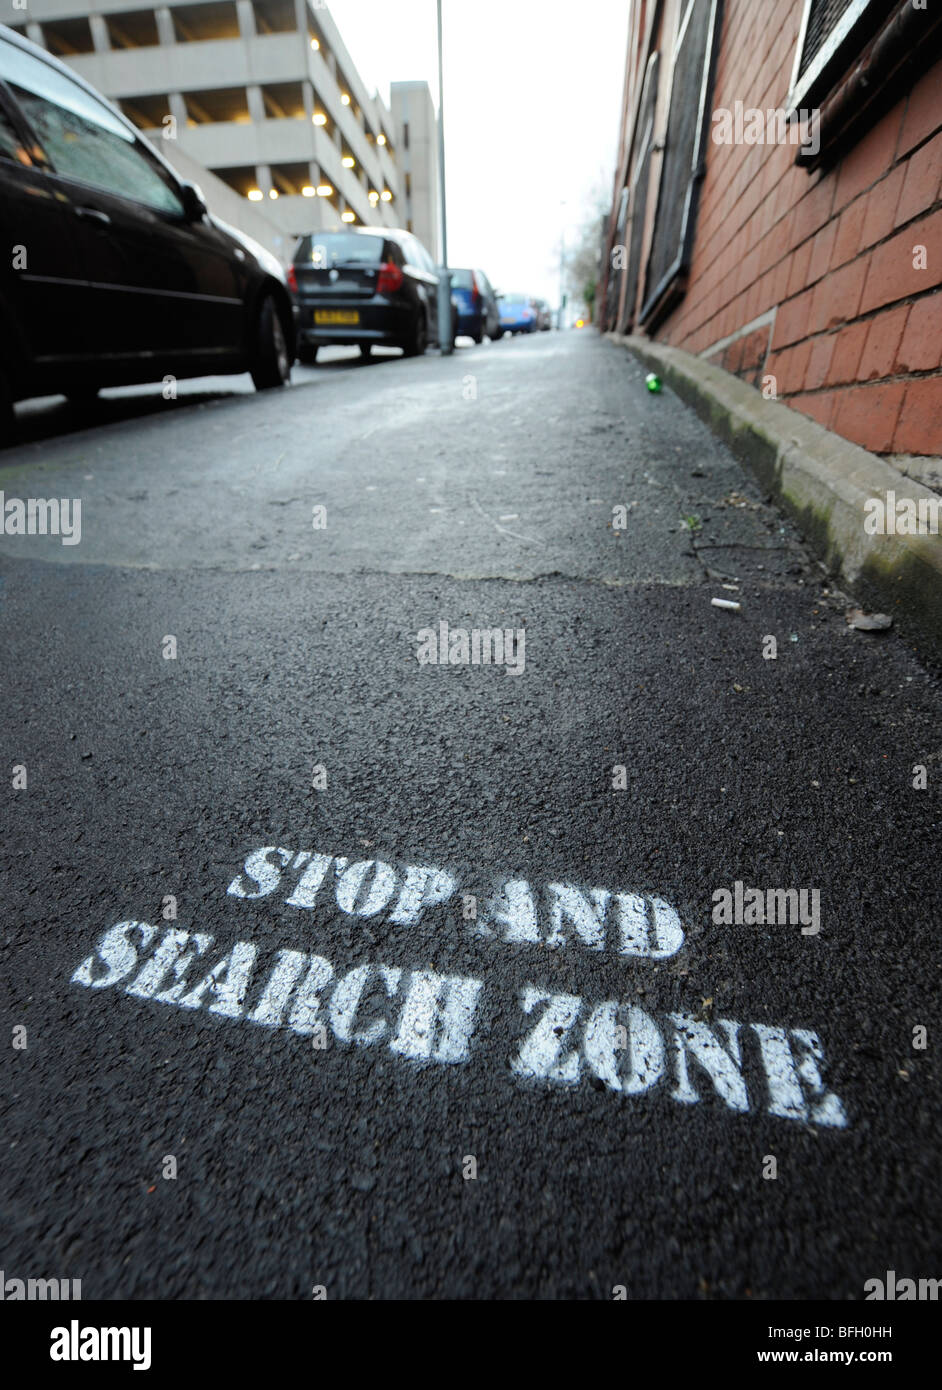 STOP AND SEARCH ZONE SIGN ON A STREET PAVEMENT IN BIRMINGHAM UK. - Stock Image